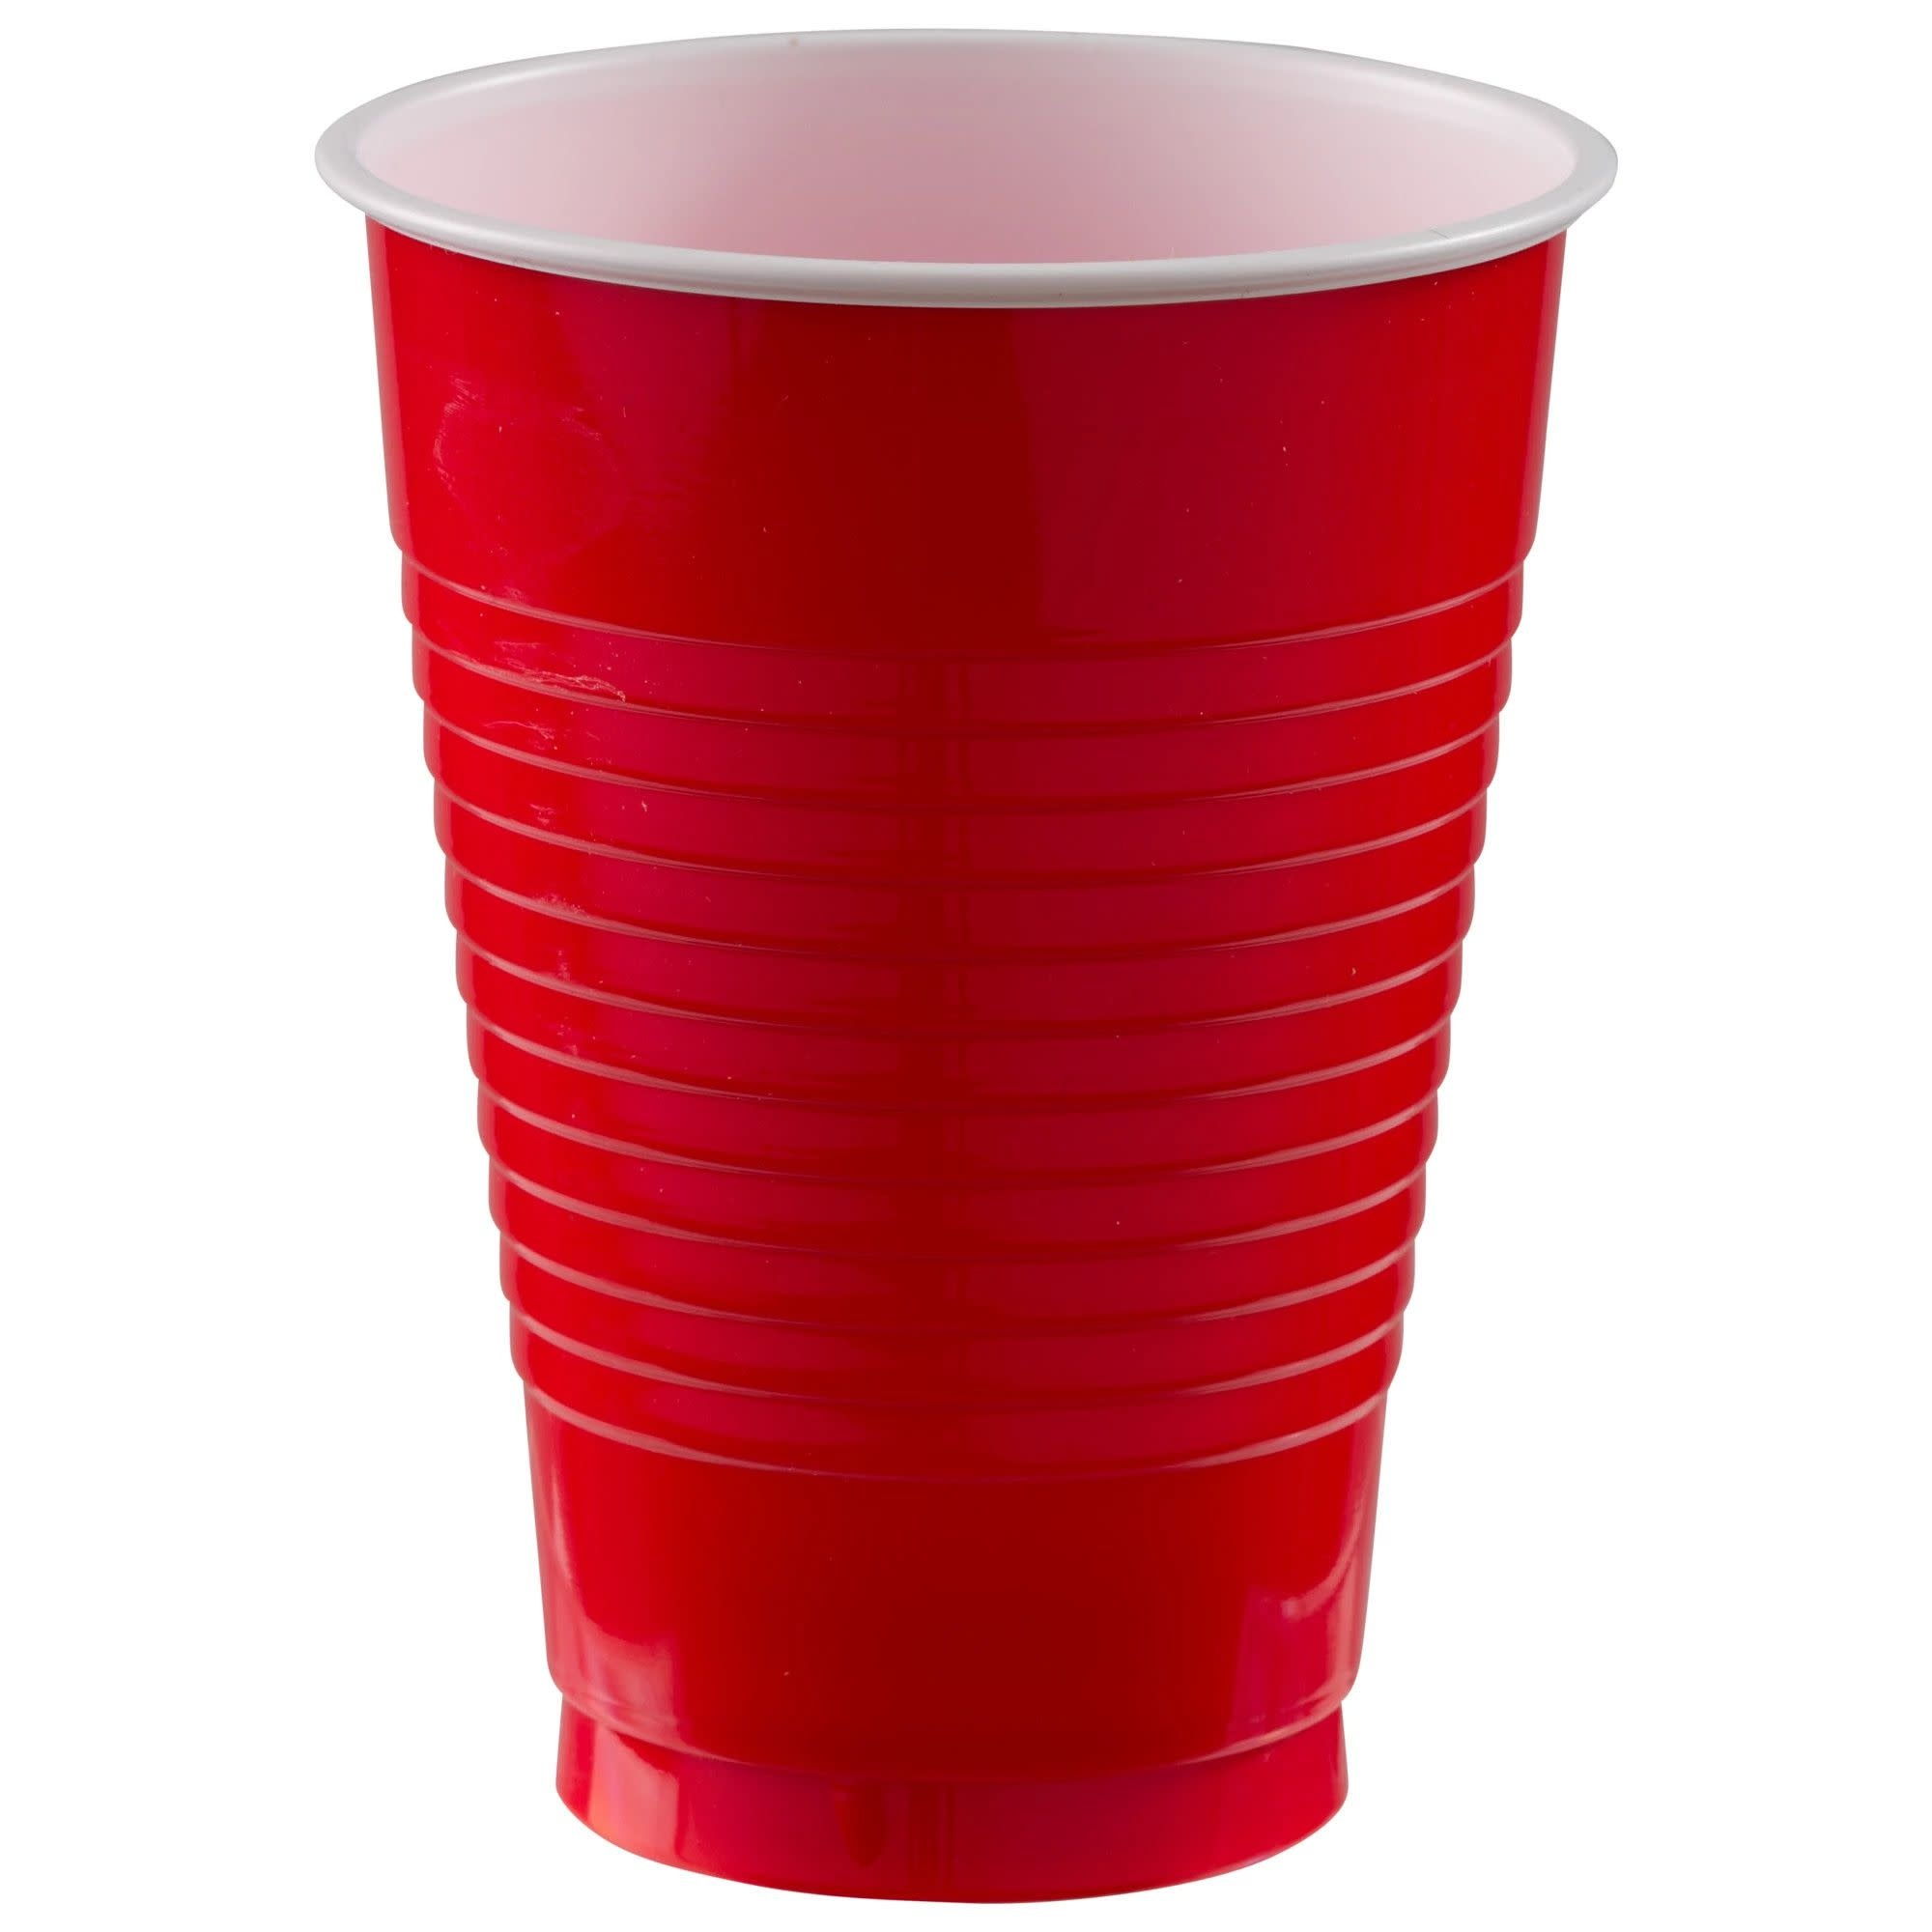 12 Oz. Plastic Cups, Mid Ct. - Apple Red